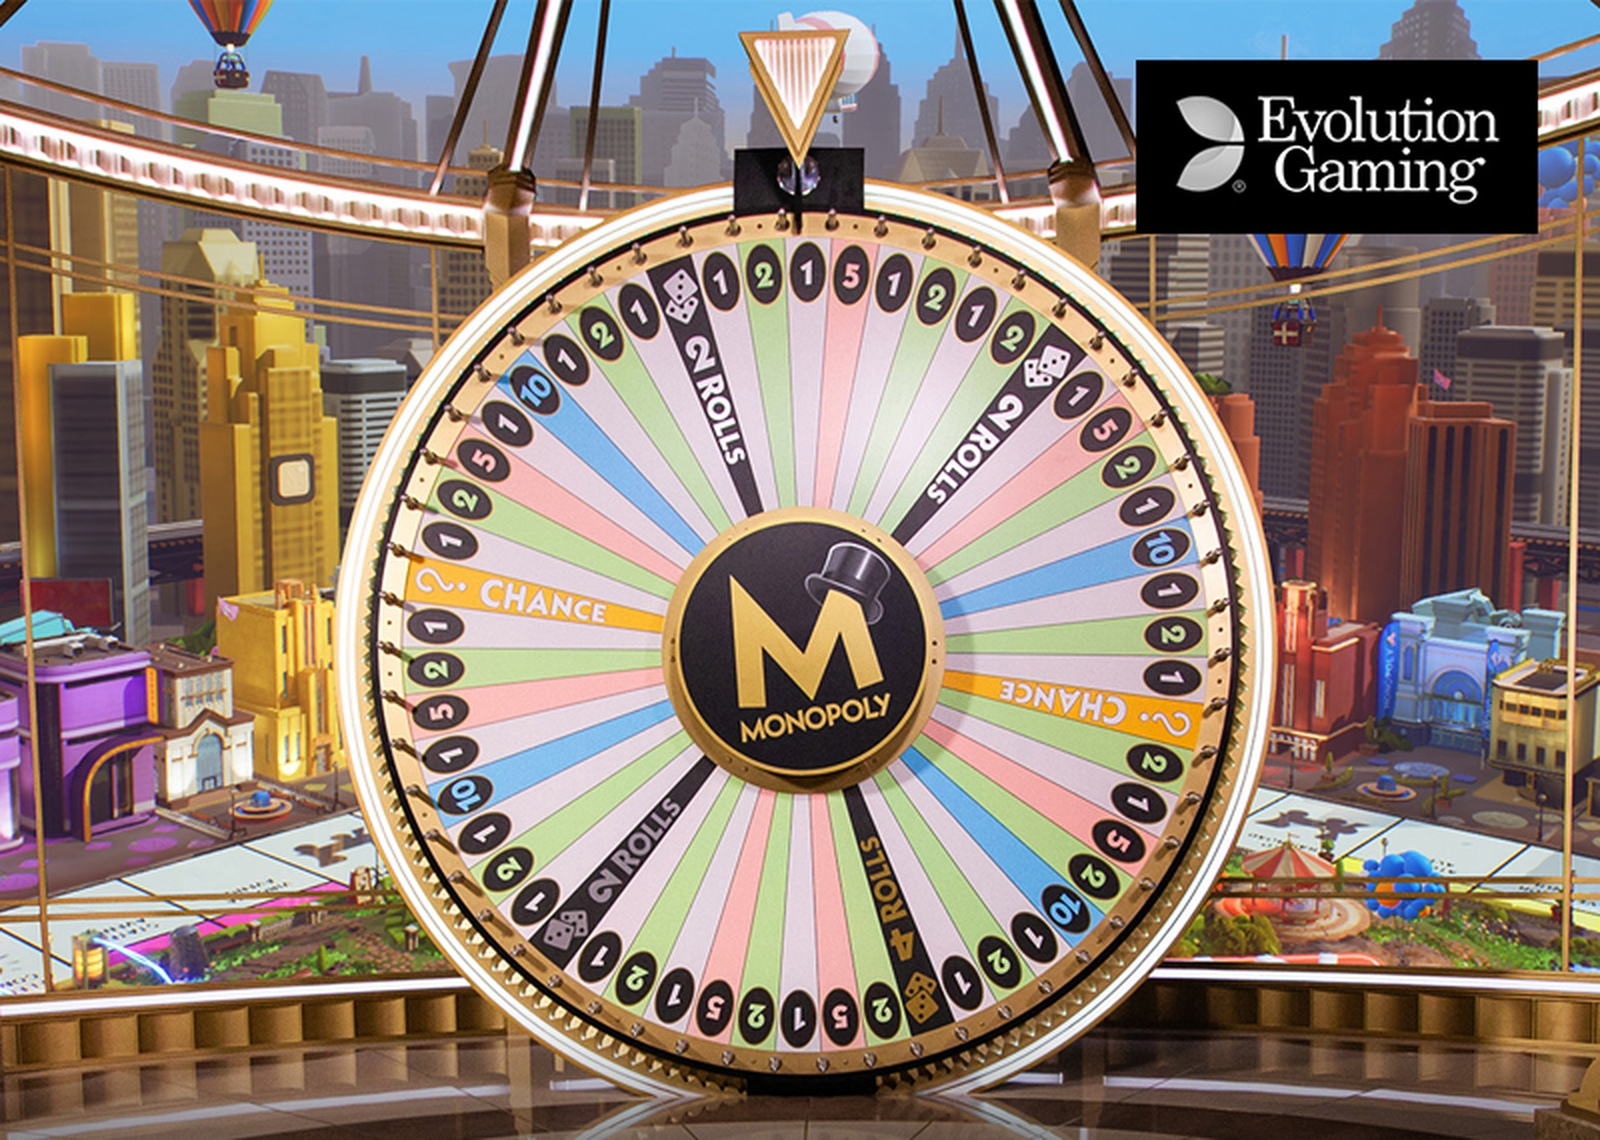 Reels in Money Wheel (Evolution Gaming) Slot Game by Evolution Gaming